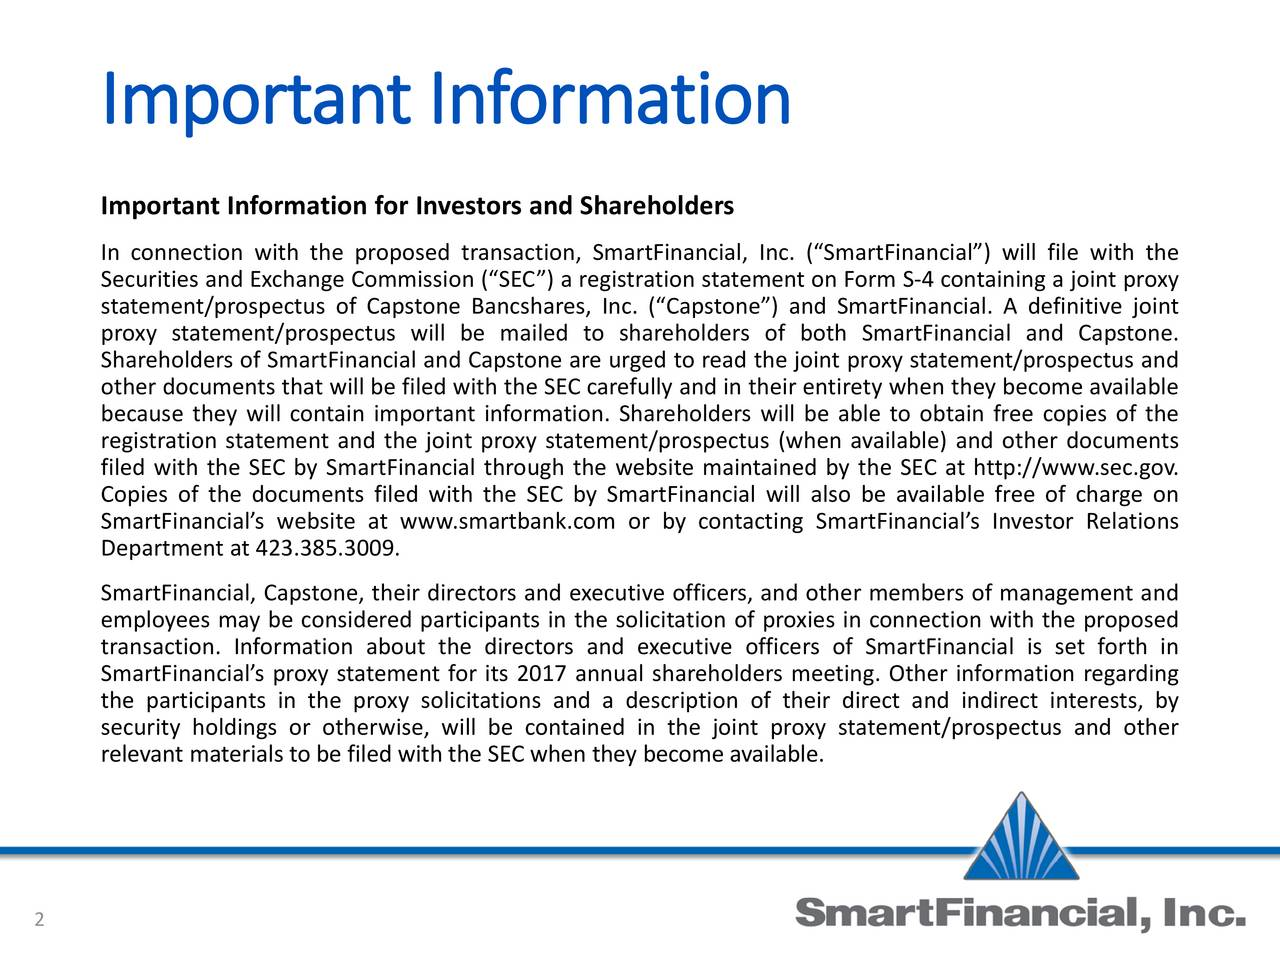 for Investors and Shareholders In connection with the proposed transaction, SmartFinancial, Inc. (SmartFinancial) will file with the Securities and Exchange Commission (SEC) a registration statement on Form S-4 containing a joint proxy statement/prospectus of Capstone Bancshares, Inc. (Capstone) and SmartFinancial. A definitive joint proxy statement/prospectus will be mailed to shareholders of both SmartFinancial and Capstone. Shareholders of SmartFinancial and Capstone are urged to read the joint proxy statement/prospectus and other documents that will be filed with the SEC carefully and in their entirety when they become available because they will contain important information. Shareholders will be able to obtain free copies of the registration statement and the joint proxy statement/prospectus (when available) and other documents filed with the SEC by SmartFinancial through the website maintained by the SEC at http://www.sec.gov. Copies of the documents filed with the SEC by SmartFinancial will also be available free of charge on SmartFinancials website at www.smartbank.com or by contacting SmartFinancials Investor Relations Department at 423.385.3009. SmartFinancial, Capstone, their directors and executive officers, and other members of management and employees may be considered participants in the solicitation of proxies in connection with the proposed transaction. Information about the directors and executive officers of SmartFinancial is set forth in SmartFinancials proxy statement for its 2017 annual shareholders meeting. Other information regarding the participants in the proxy solicitations and a description of their direct and indirect interests, by security holdings or otherwise, will be contained in the joint proxy statement/prospectus and other relevant materials to be filed with the SEC when they become available. 2